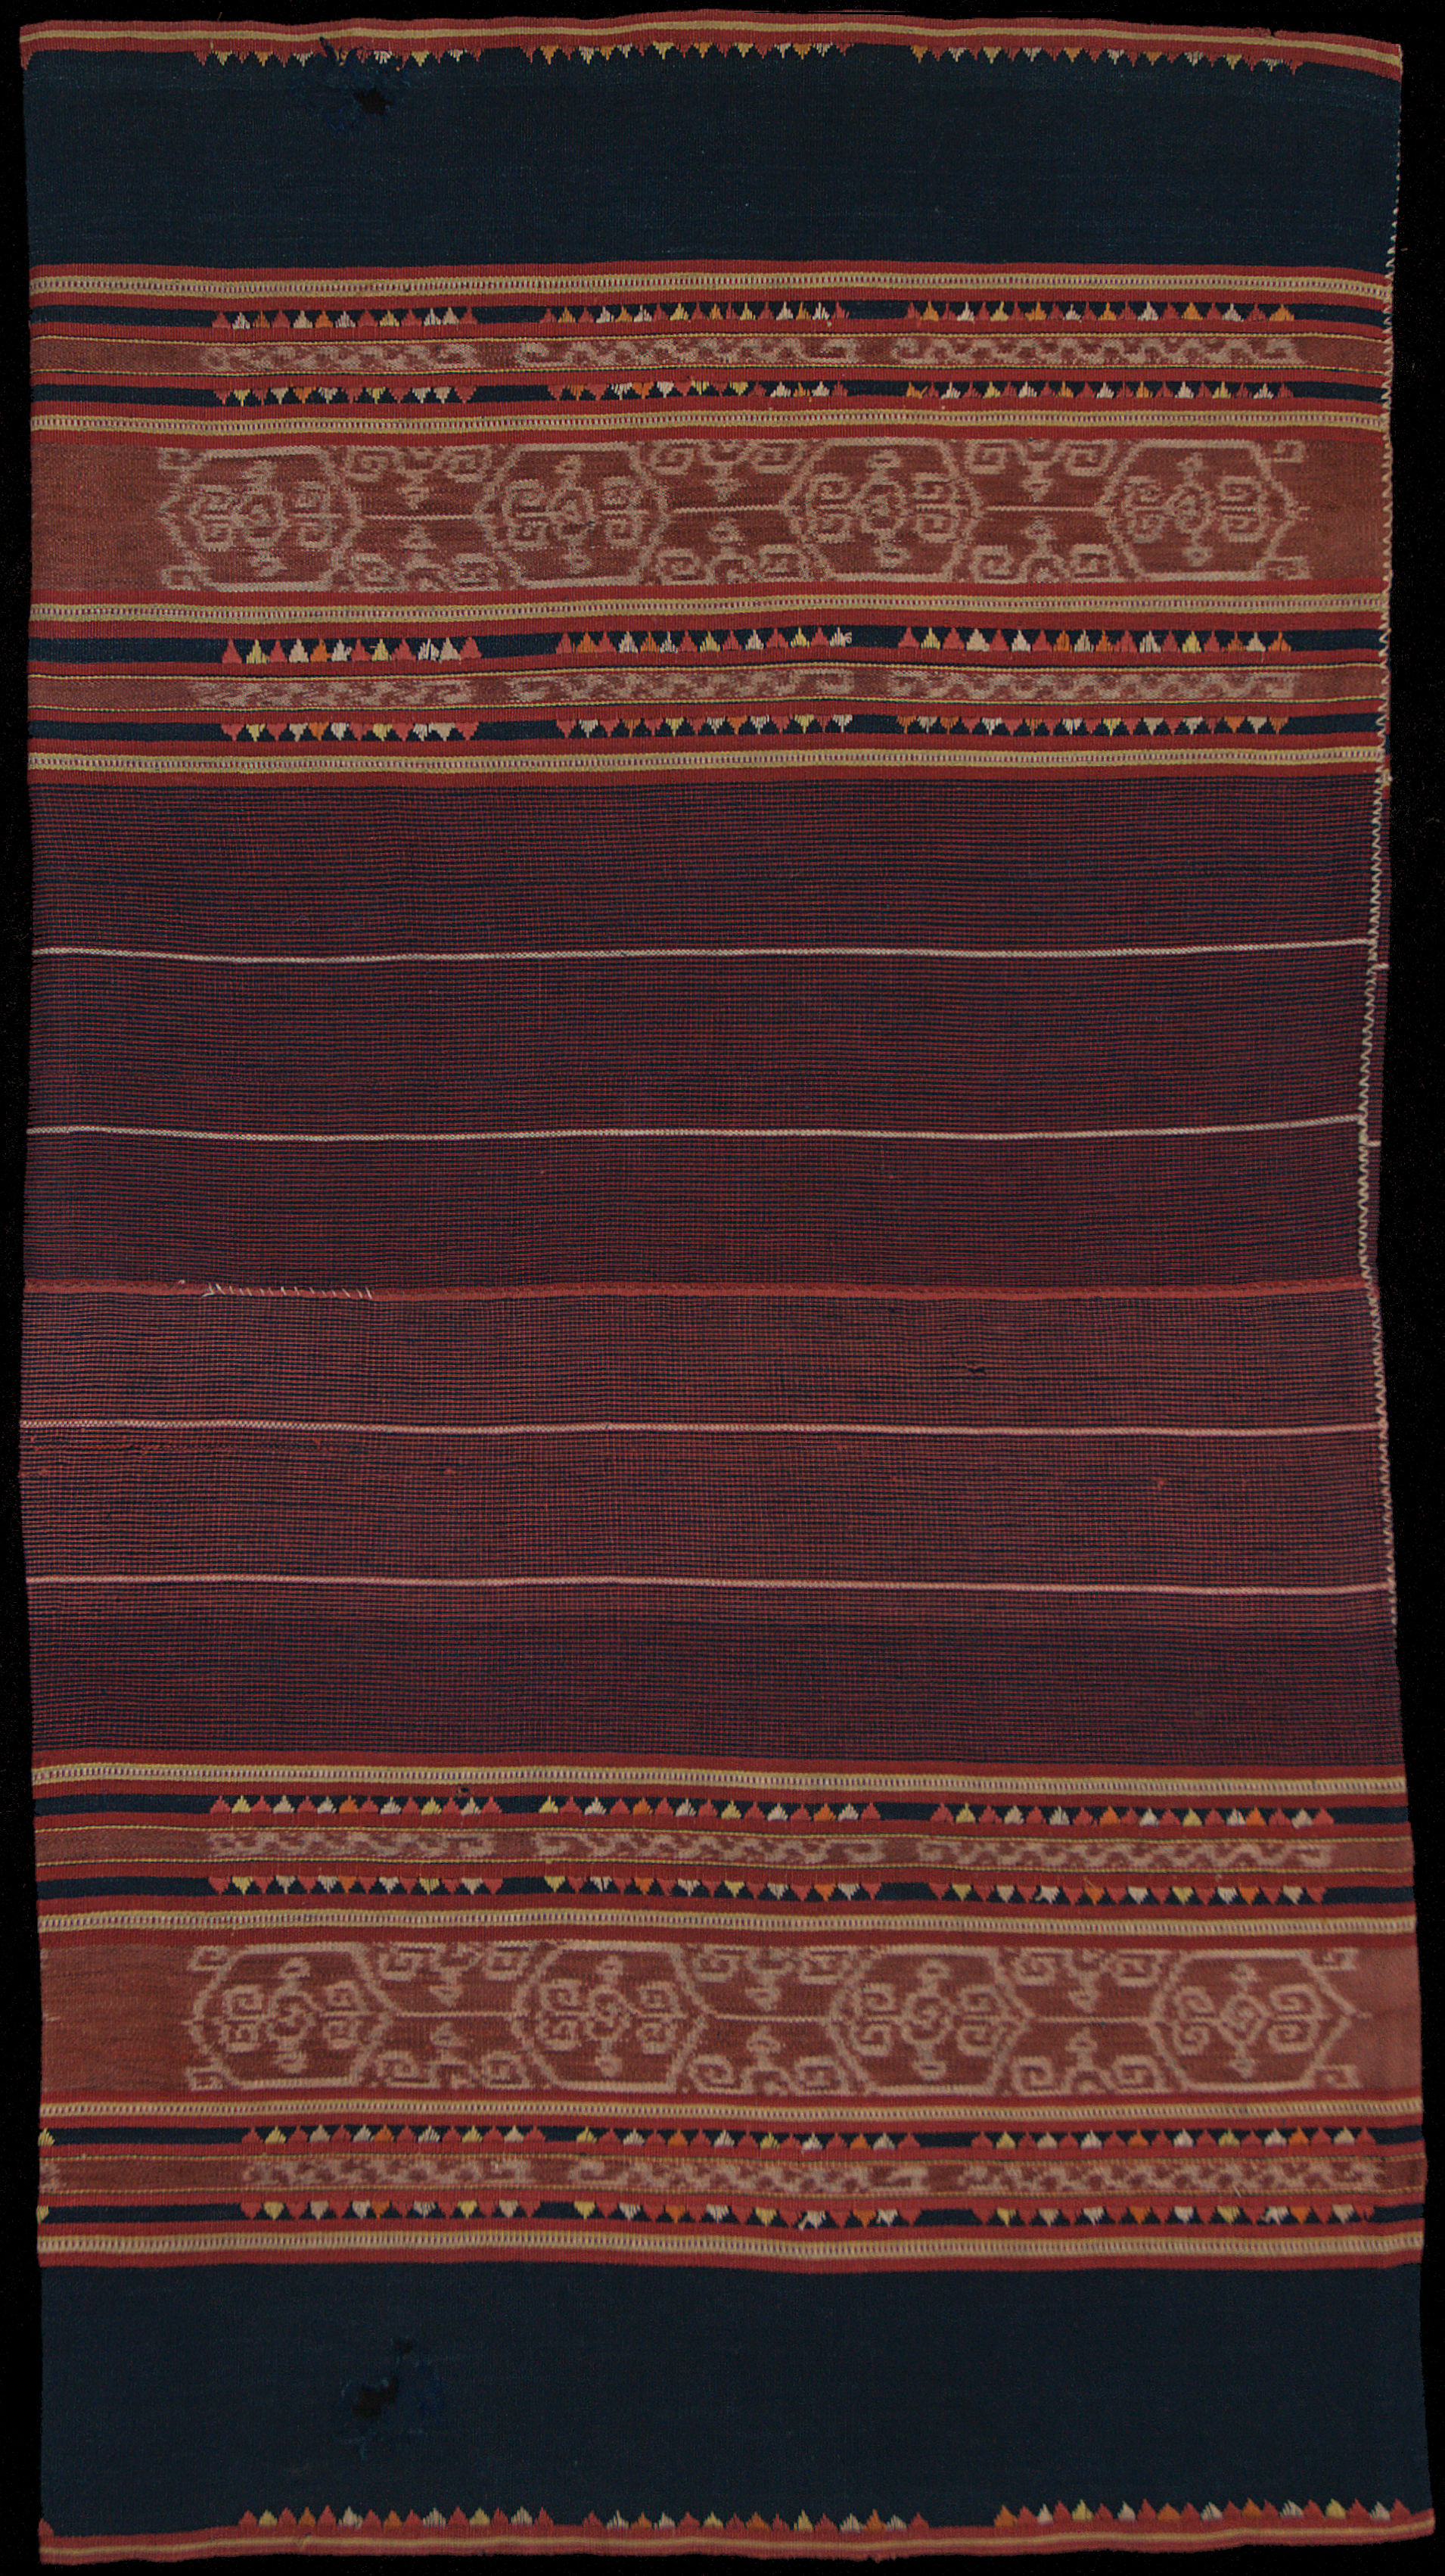 Ikat from Babar, Moluccas, Indonesia